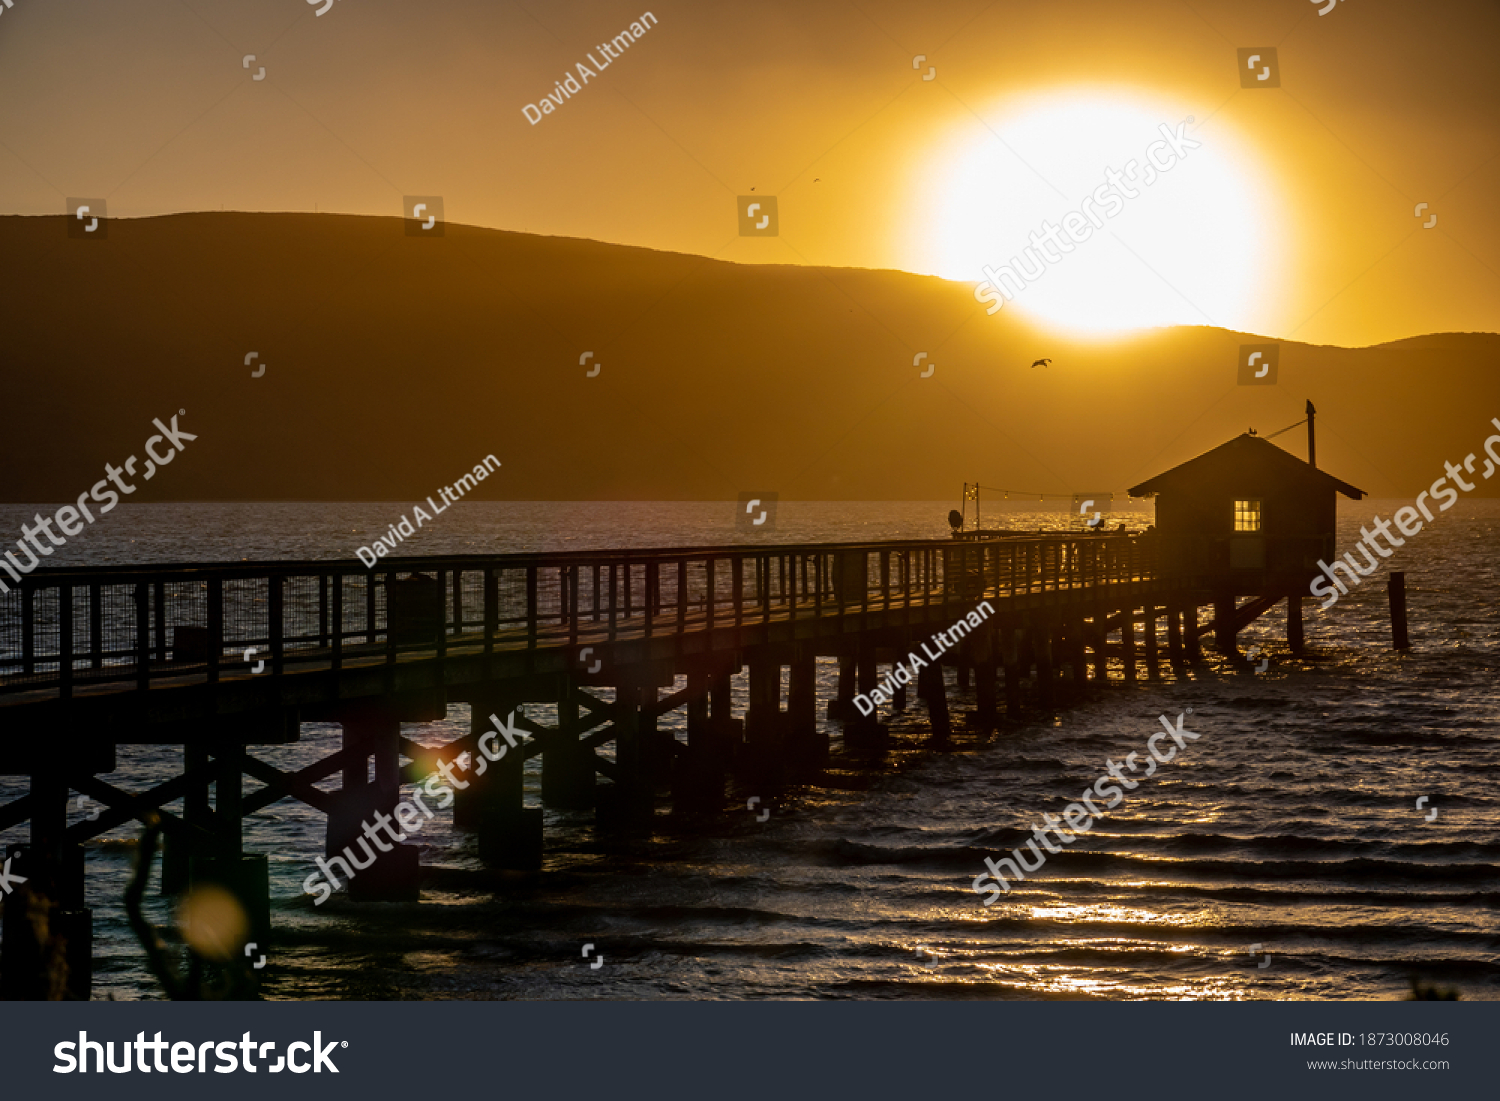 The sun sets over the Point Reyes peninsula as viewed from the shore of Tomales Bay, in Marin County, California, with a pier leading to a boat house in foreground.